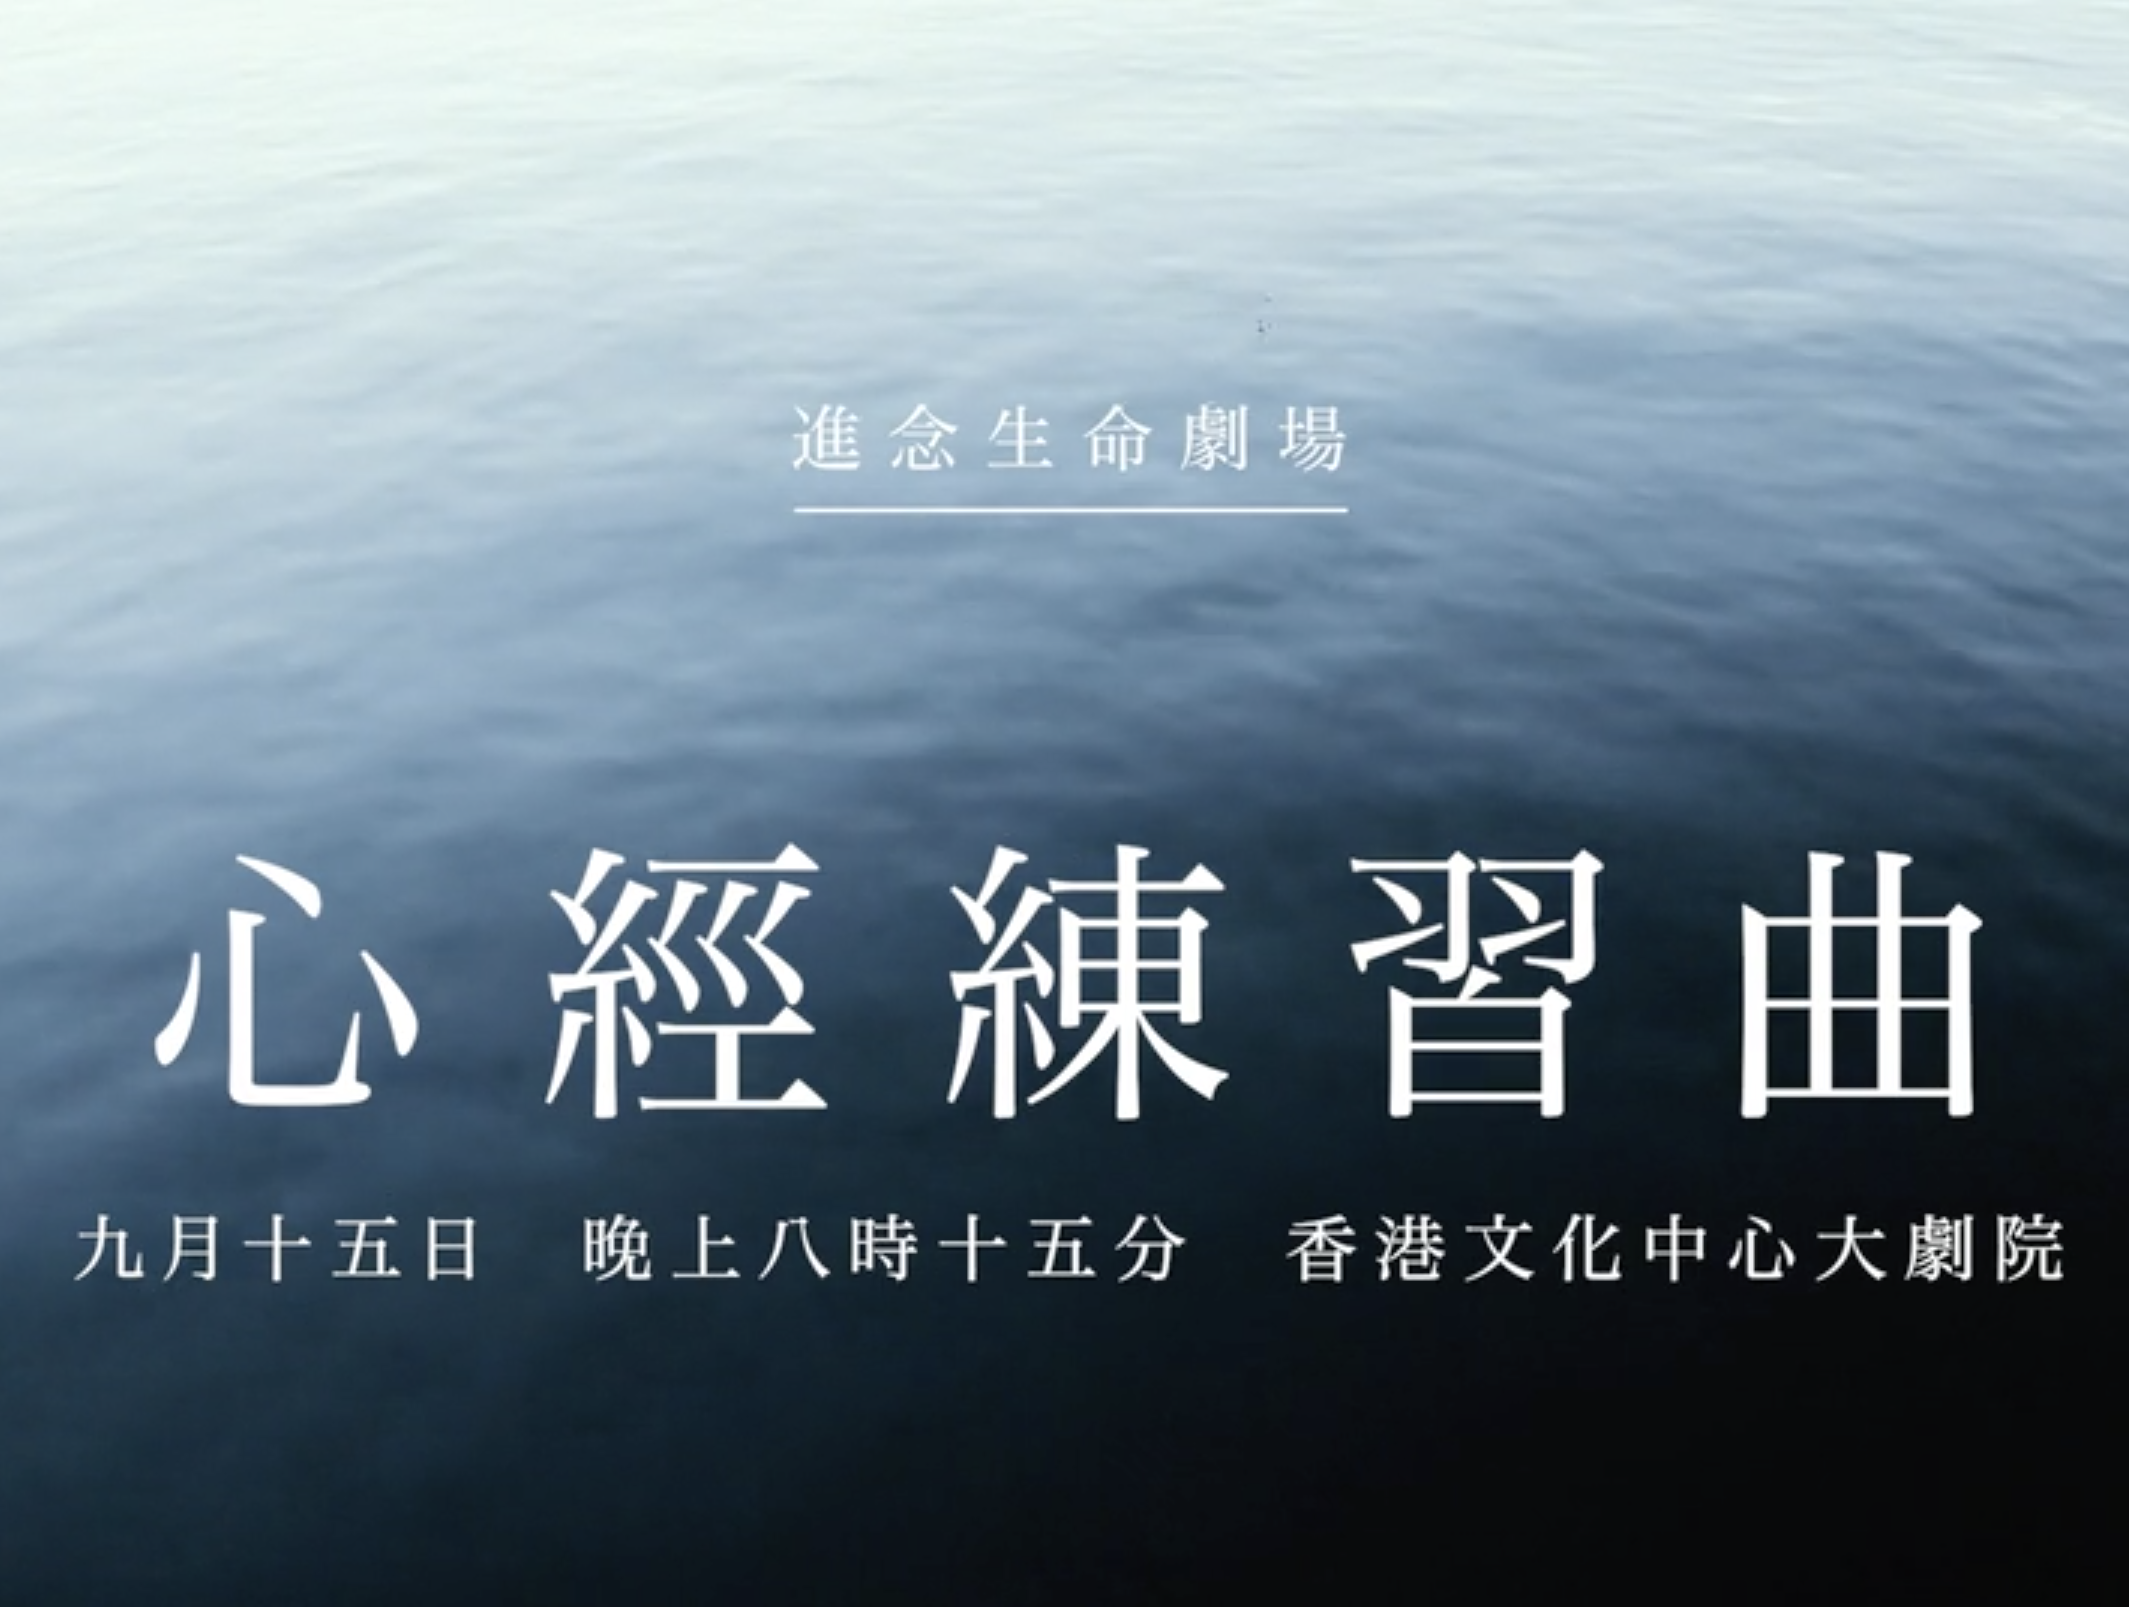 zuni x KJ Wong/ Concept Trailer - 心經練習曲音樂會 宣傳短片First Lesson In Heart Sutra Promotional Trailer